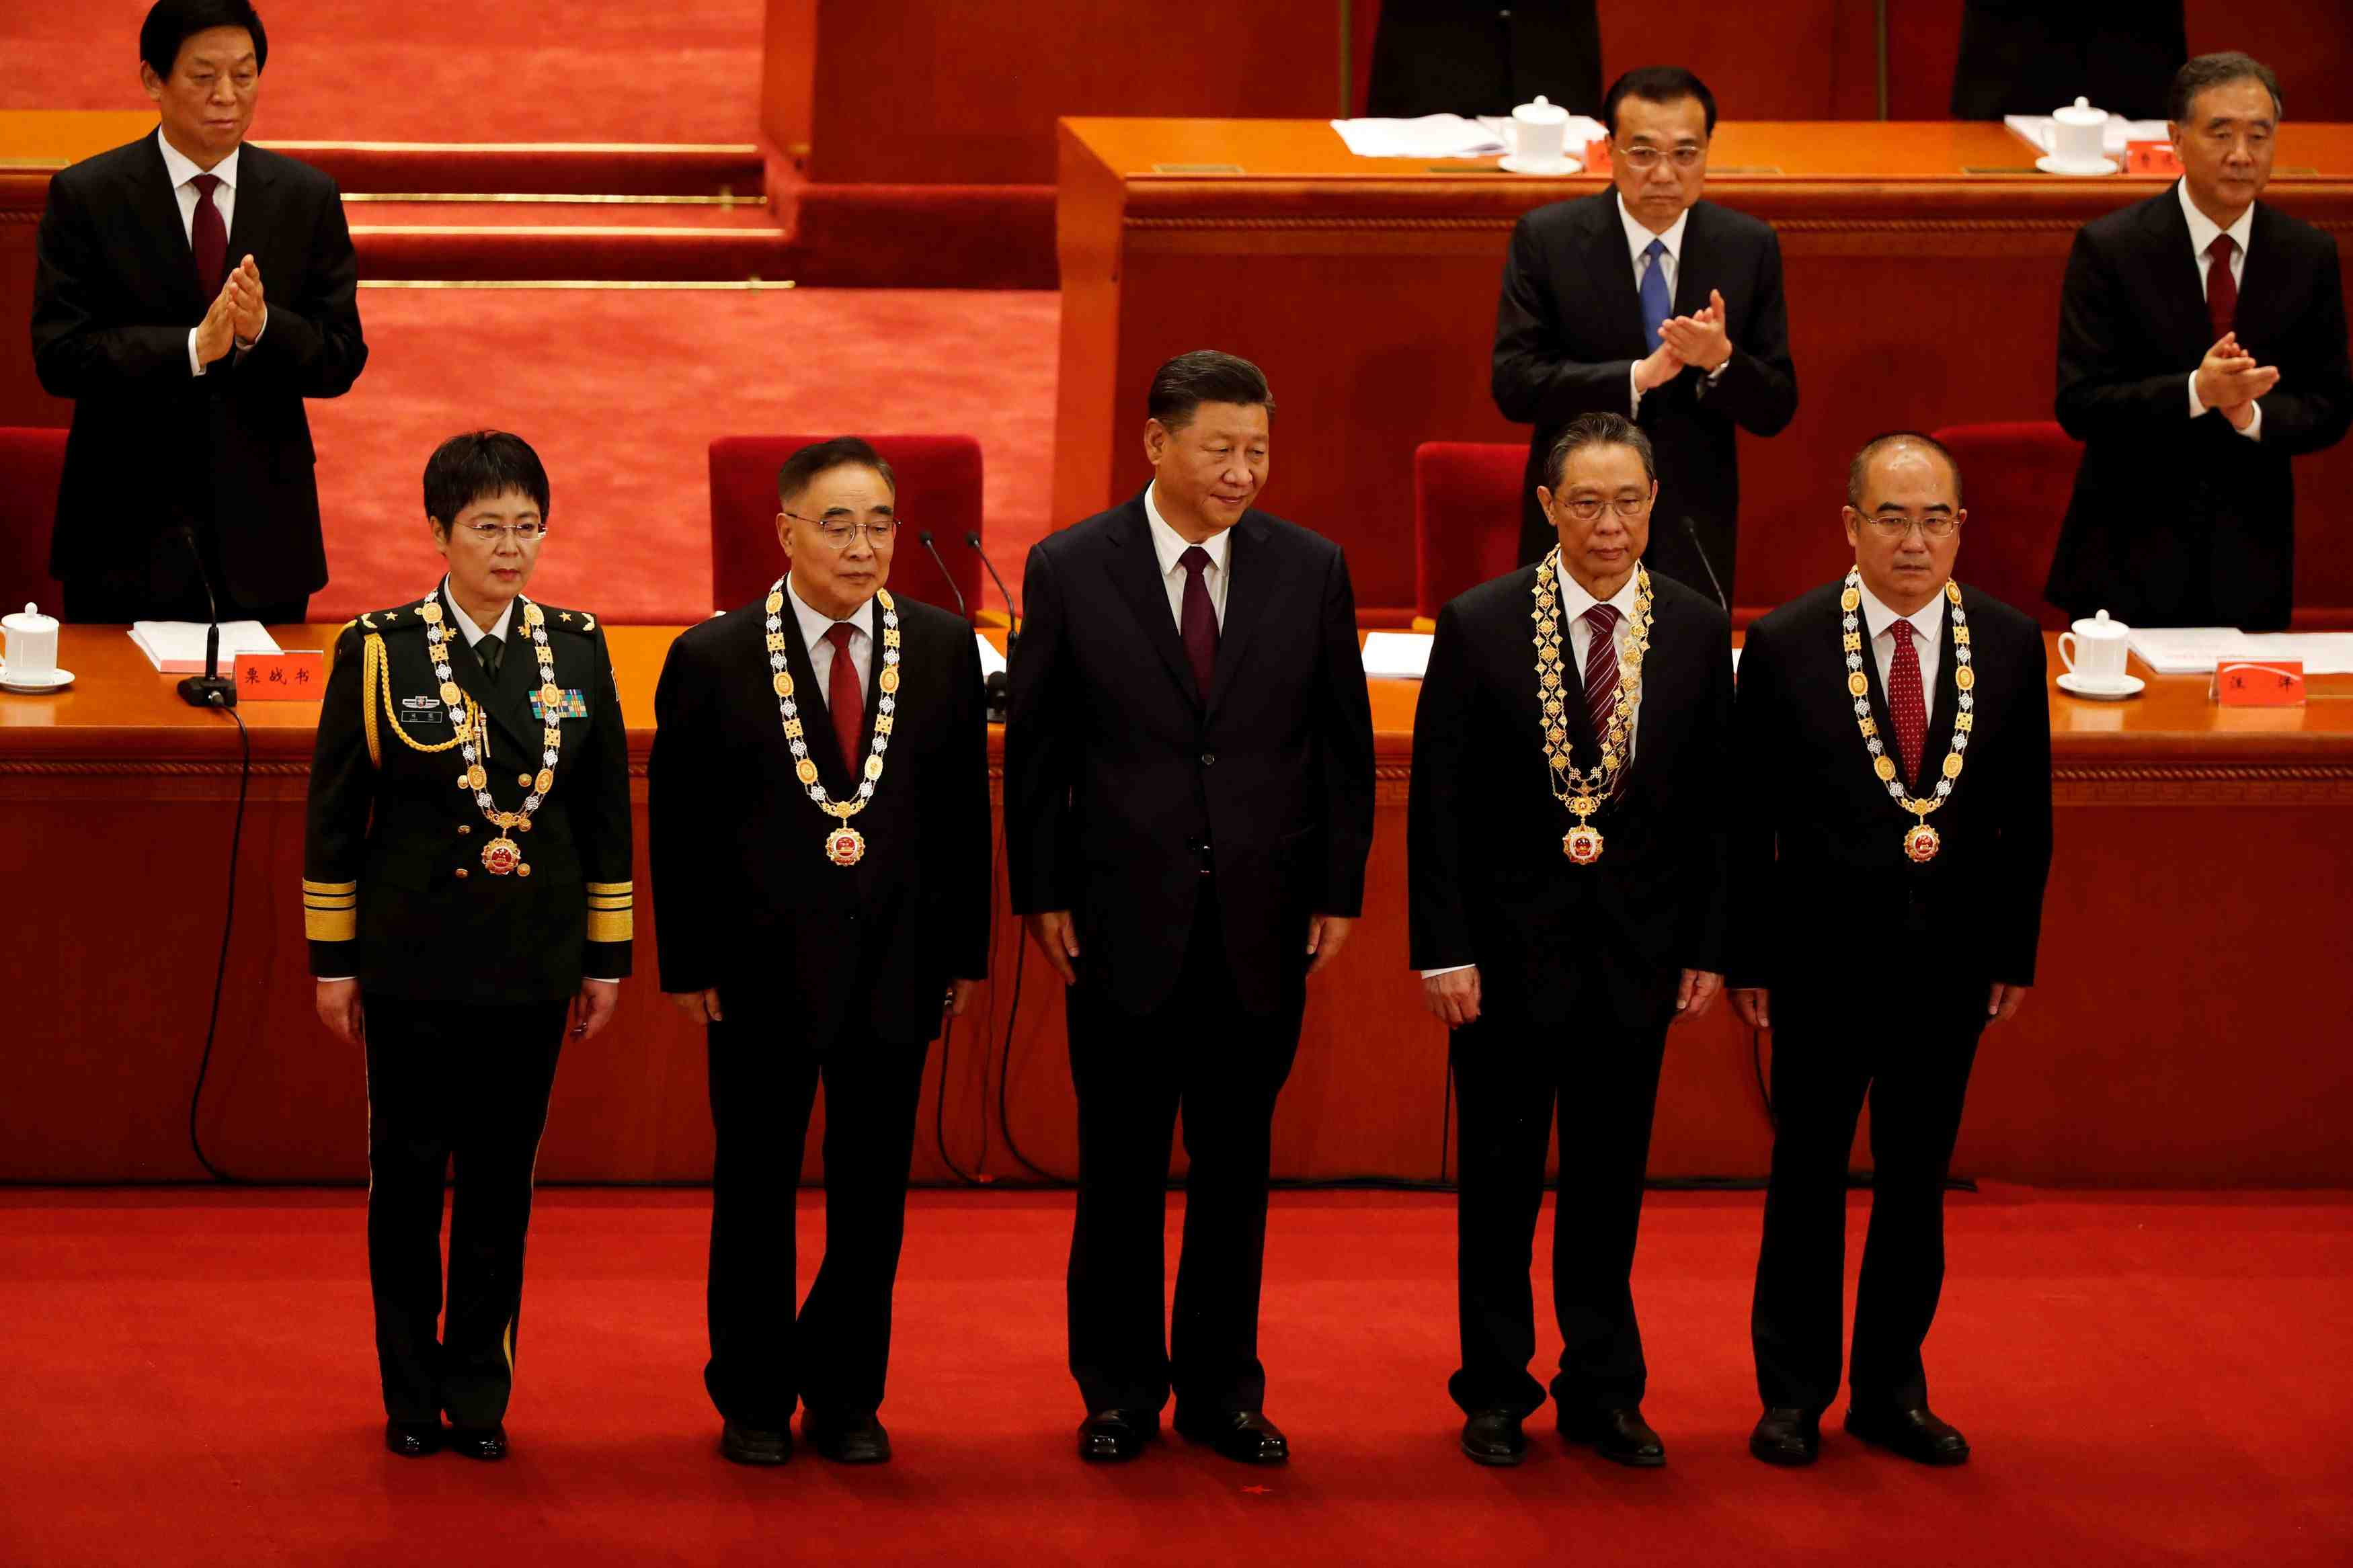 Meeting to commend role models in China's fight against the coronavirus disease (COVID-19) outbreak, at the Great Hall of the People in Beijing